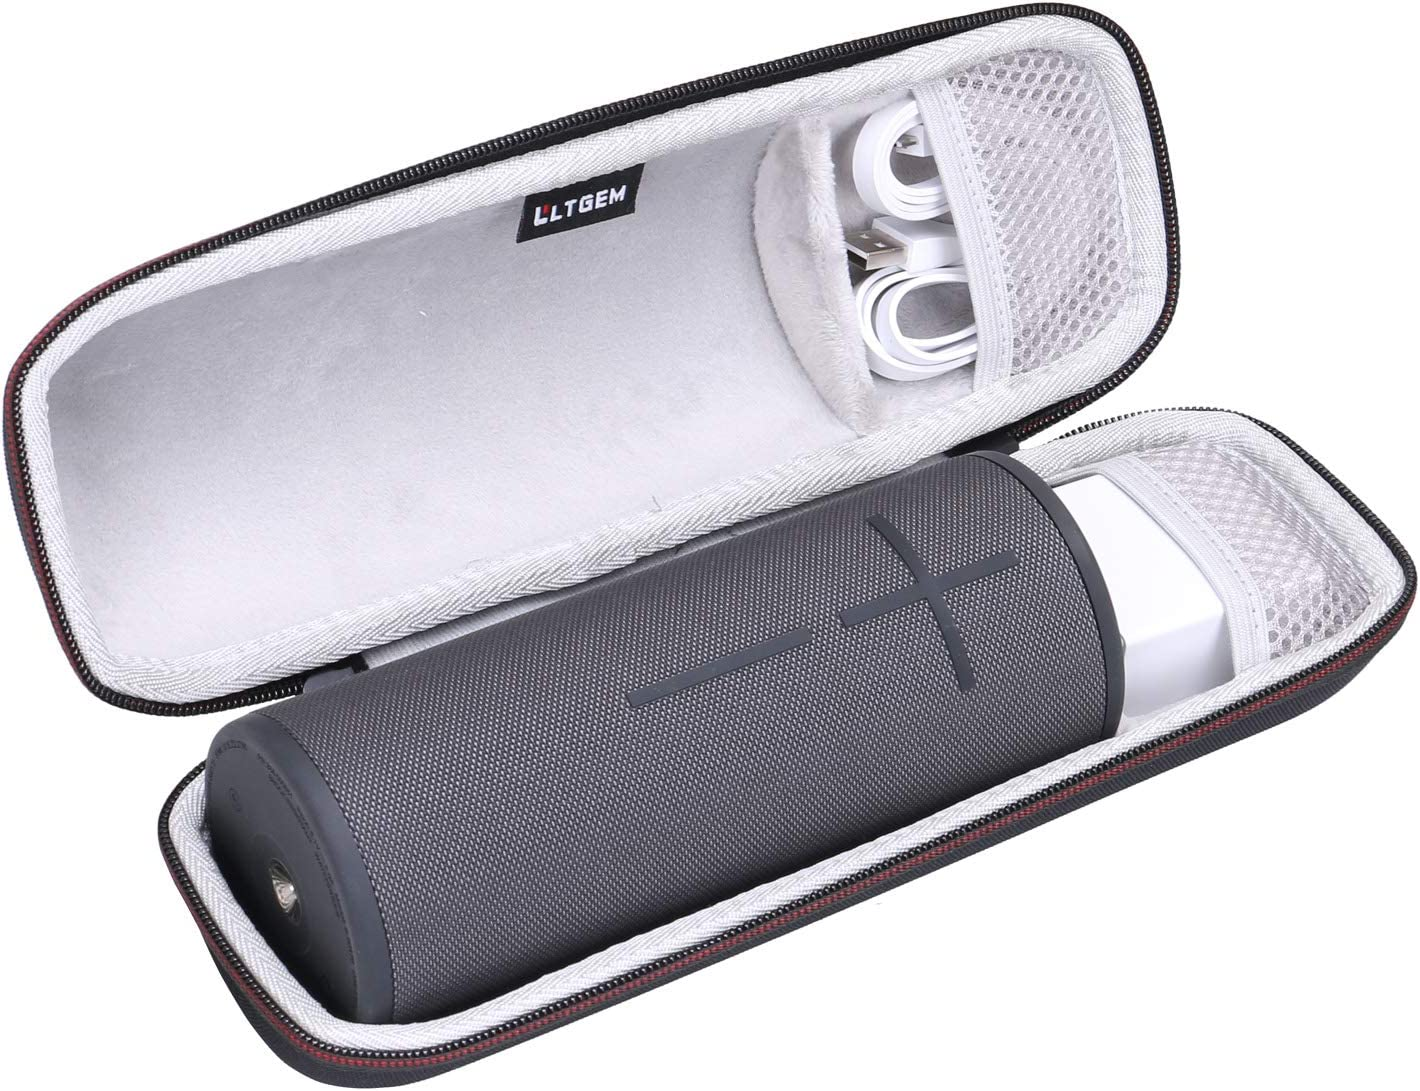 LTGEM Case for UE Ultimate Ears Boom 3 or DKnight Big MagicBox Portable Bluetooth Wireless Speaker.Fits USB Cable and Charger